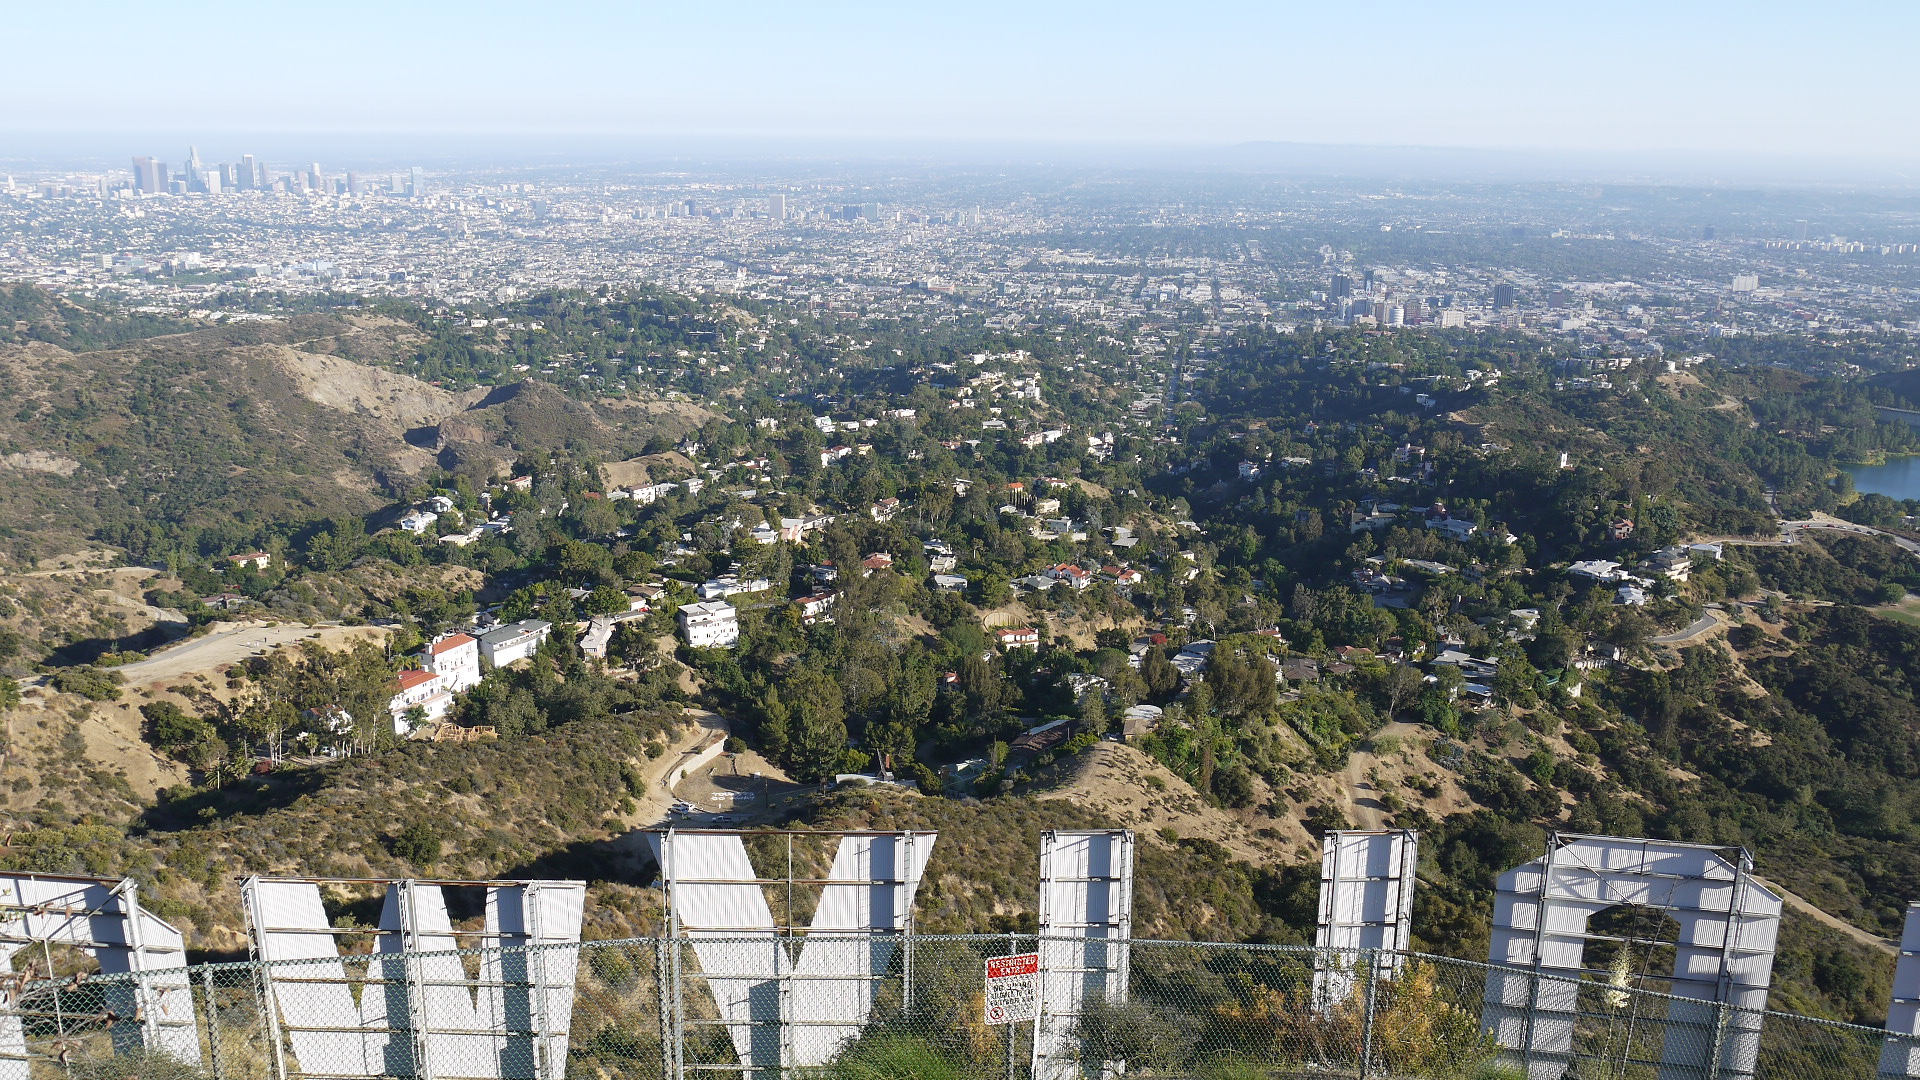 And You Get To The Highest Point Behind Hollywood Sign So Cool